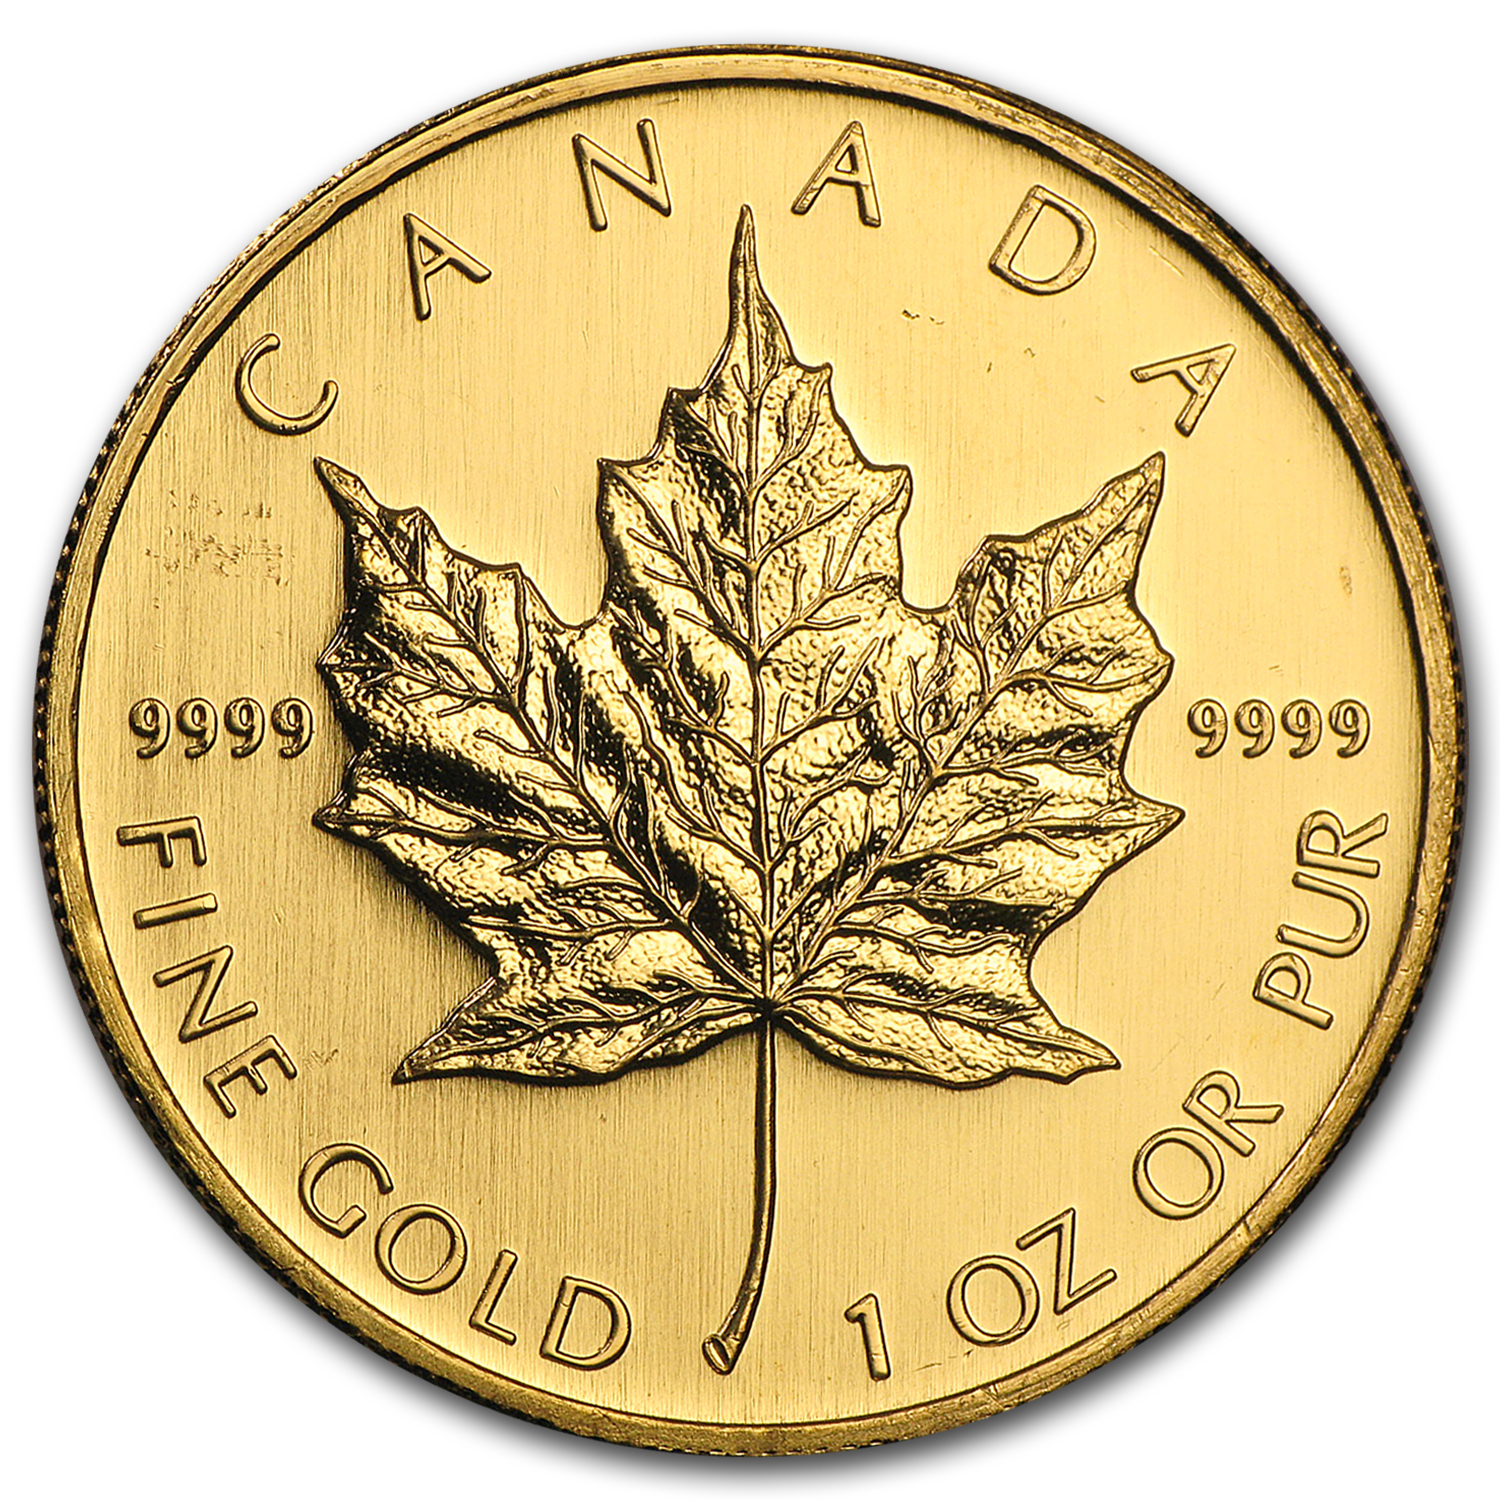 2008 1 oz Gold Canadian Maple Leaf - Brilliant Uncirculated